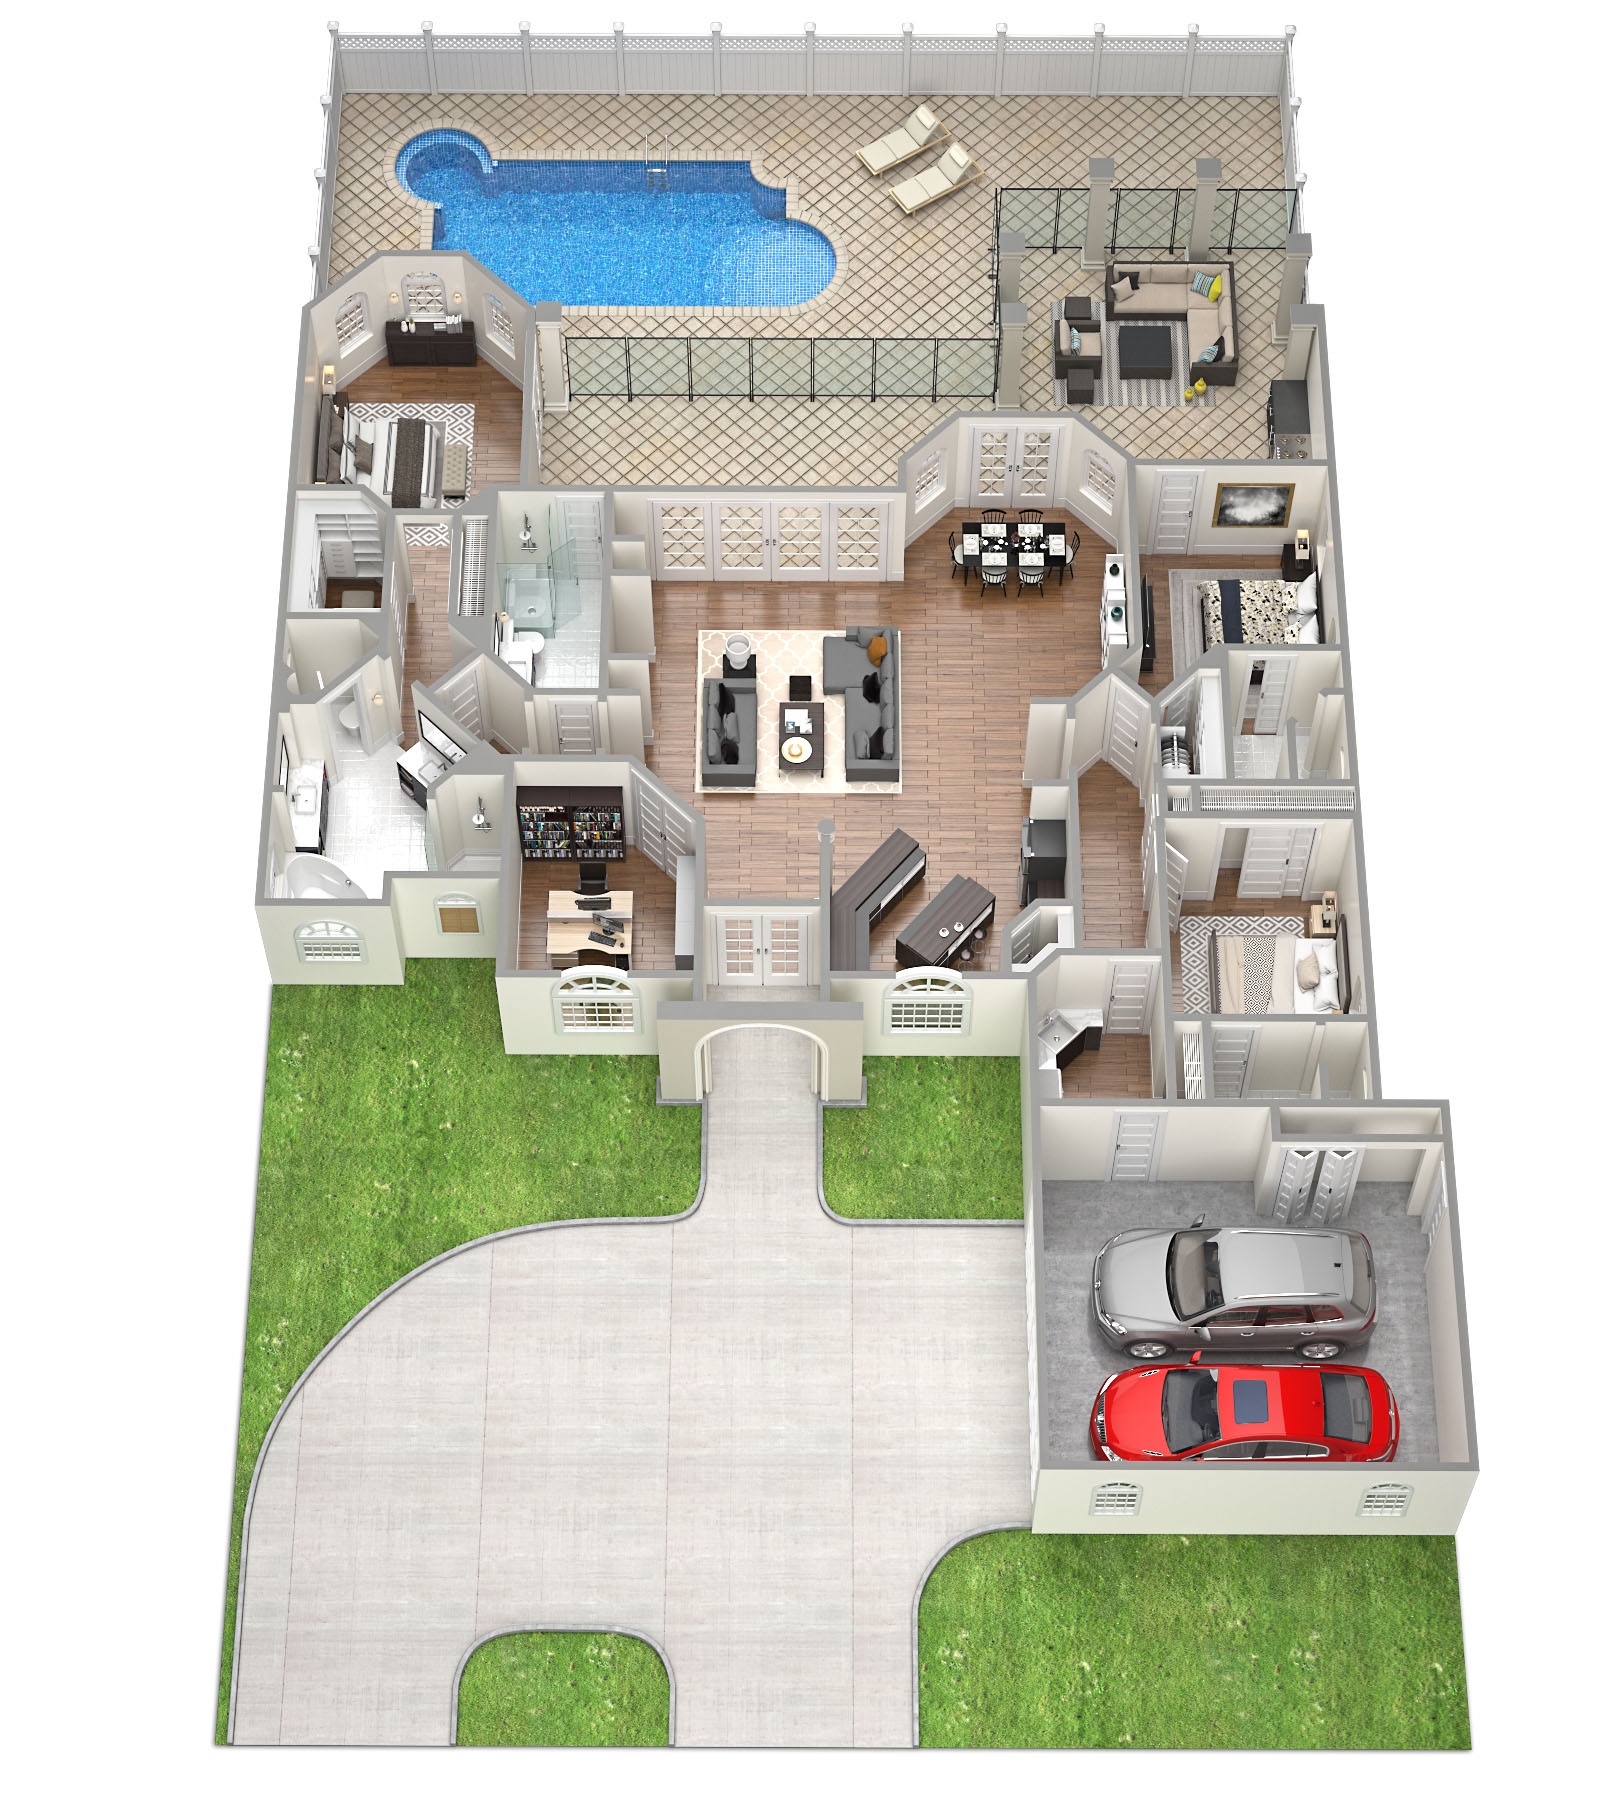 SawyerSound Santa Barbara 3D Floorplan by Tsymbals